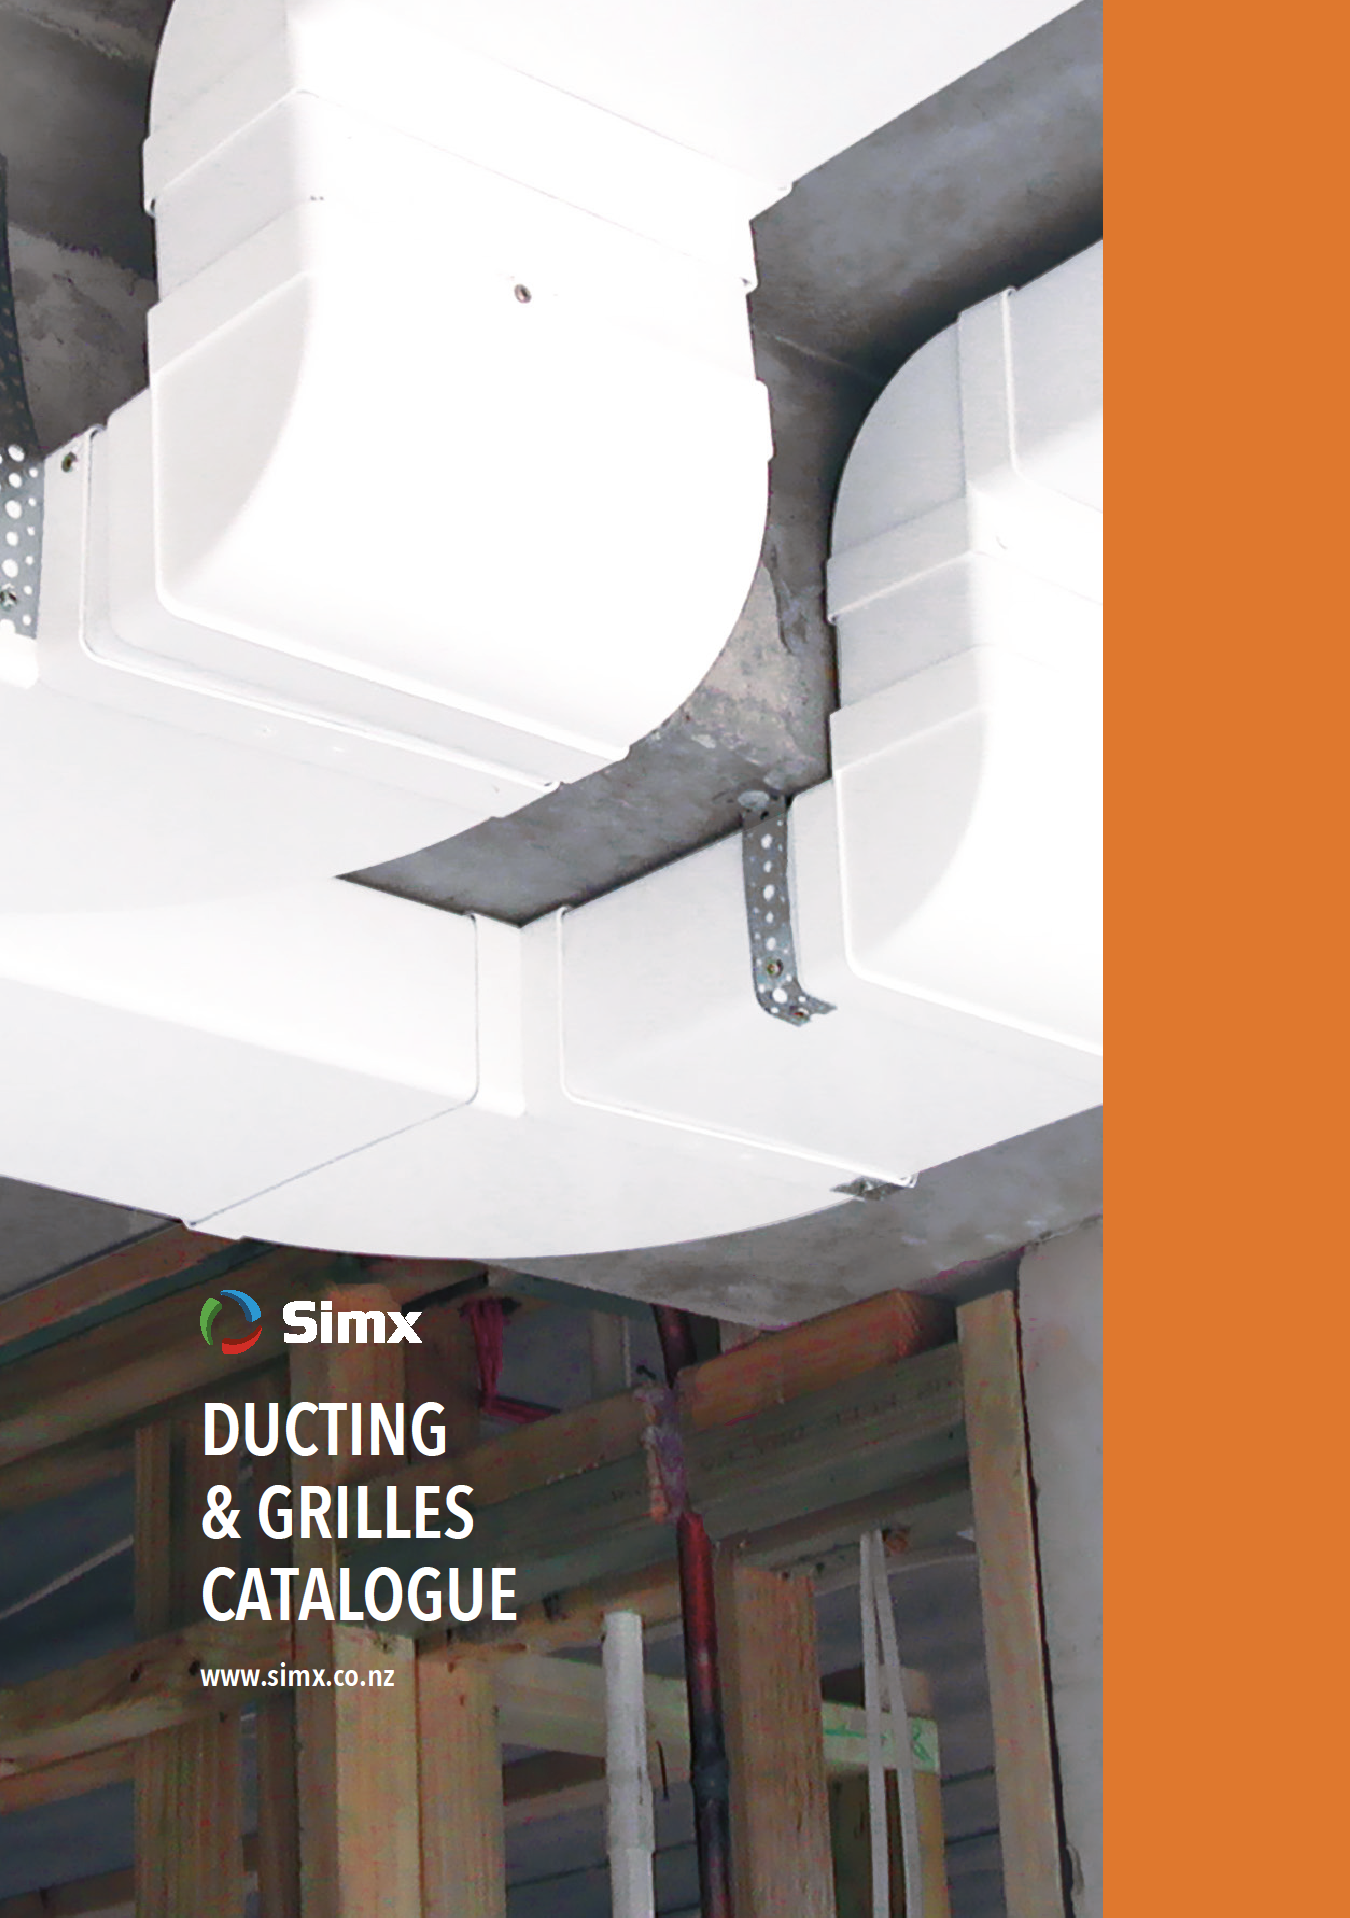 Ducting & Grilles Catalogue